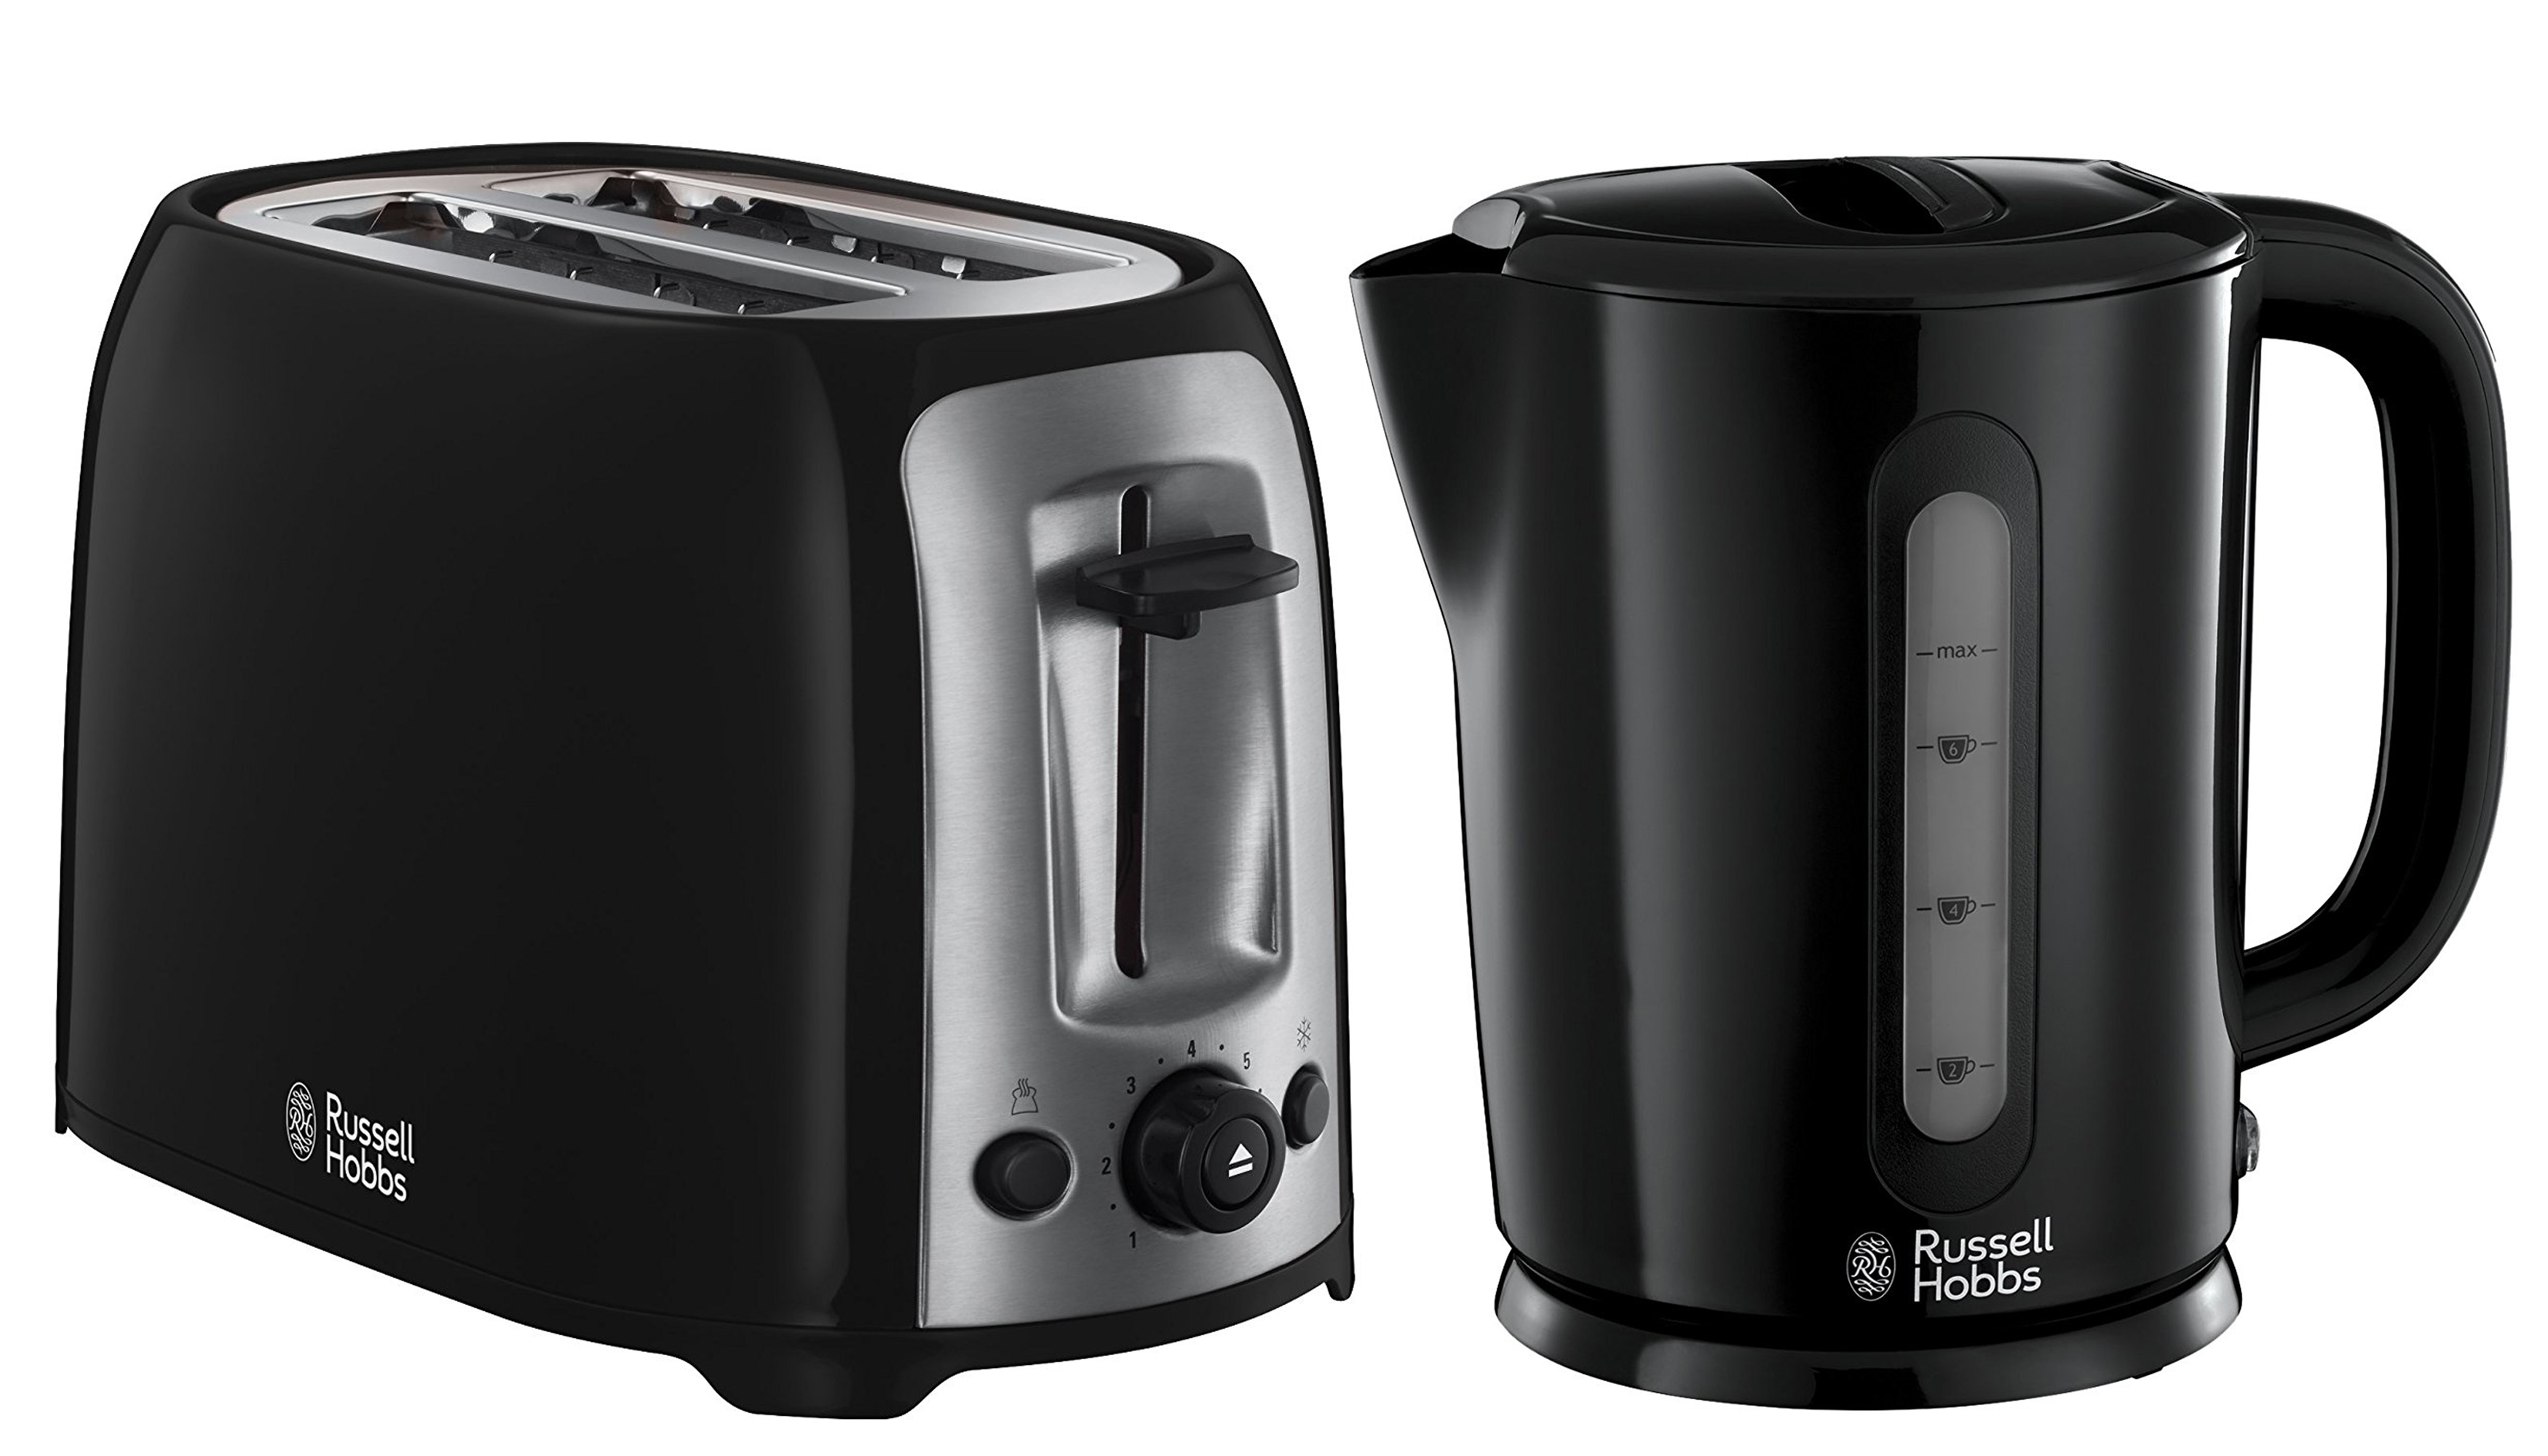 /Russell Hobbs Darwin Kettle And 2 Slice Toaster Set